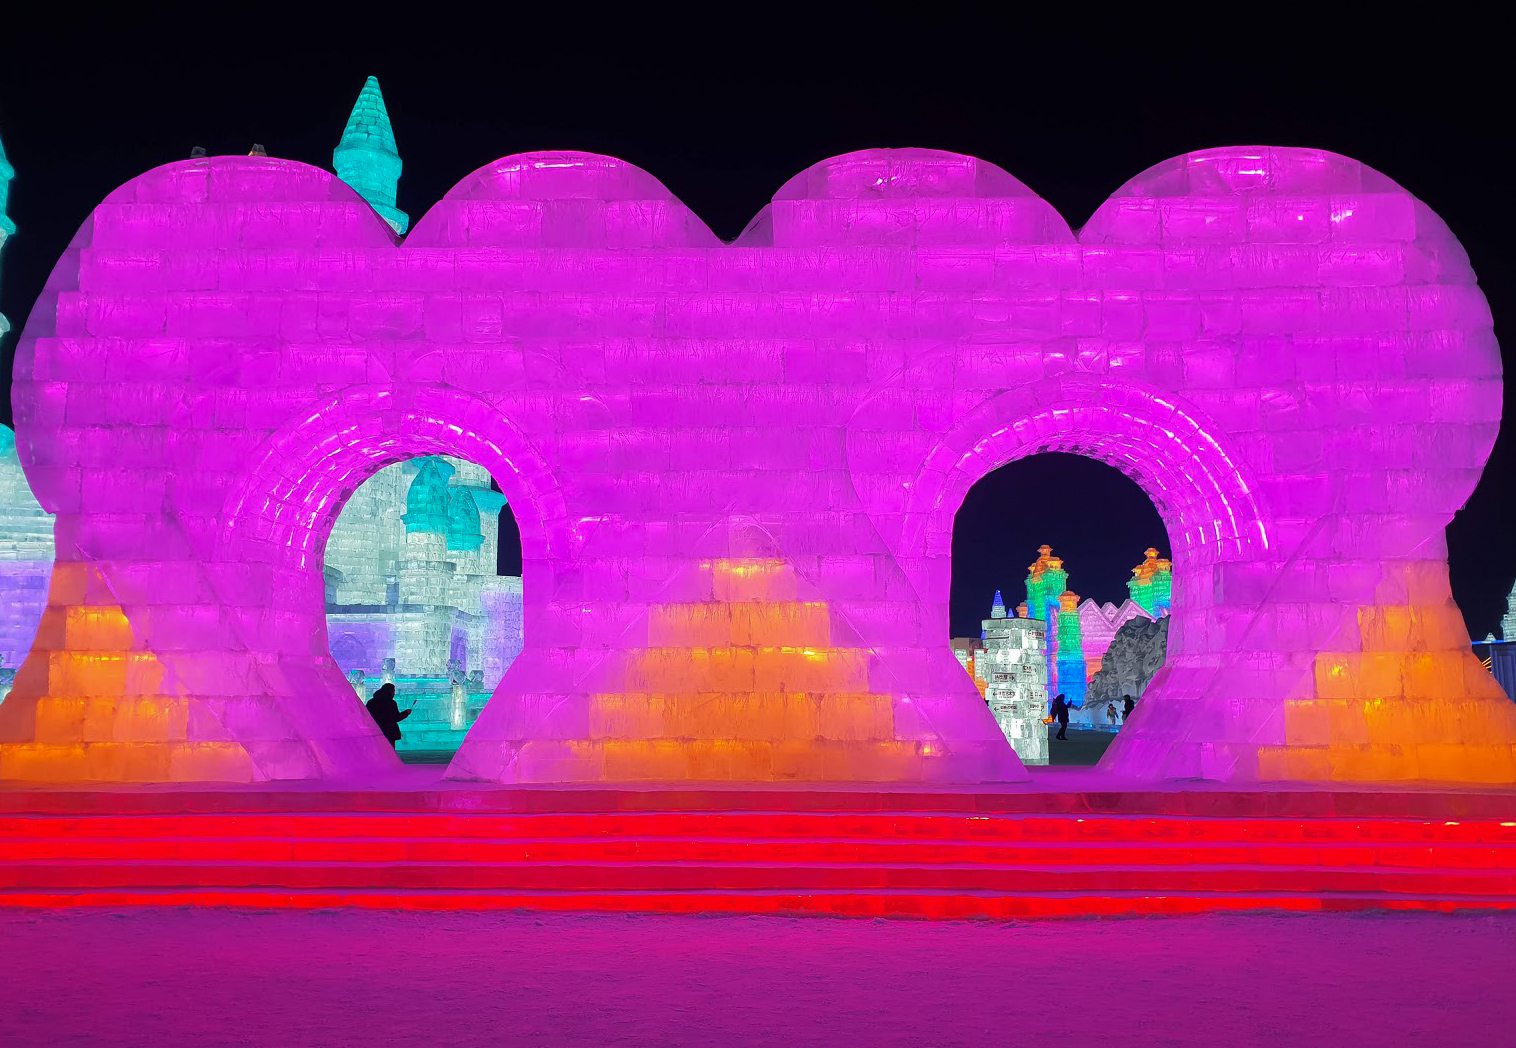 2 large loveheart ice sculptures lit in pink at Harbin Ice and Snow World